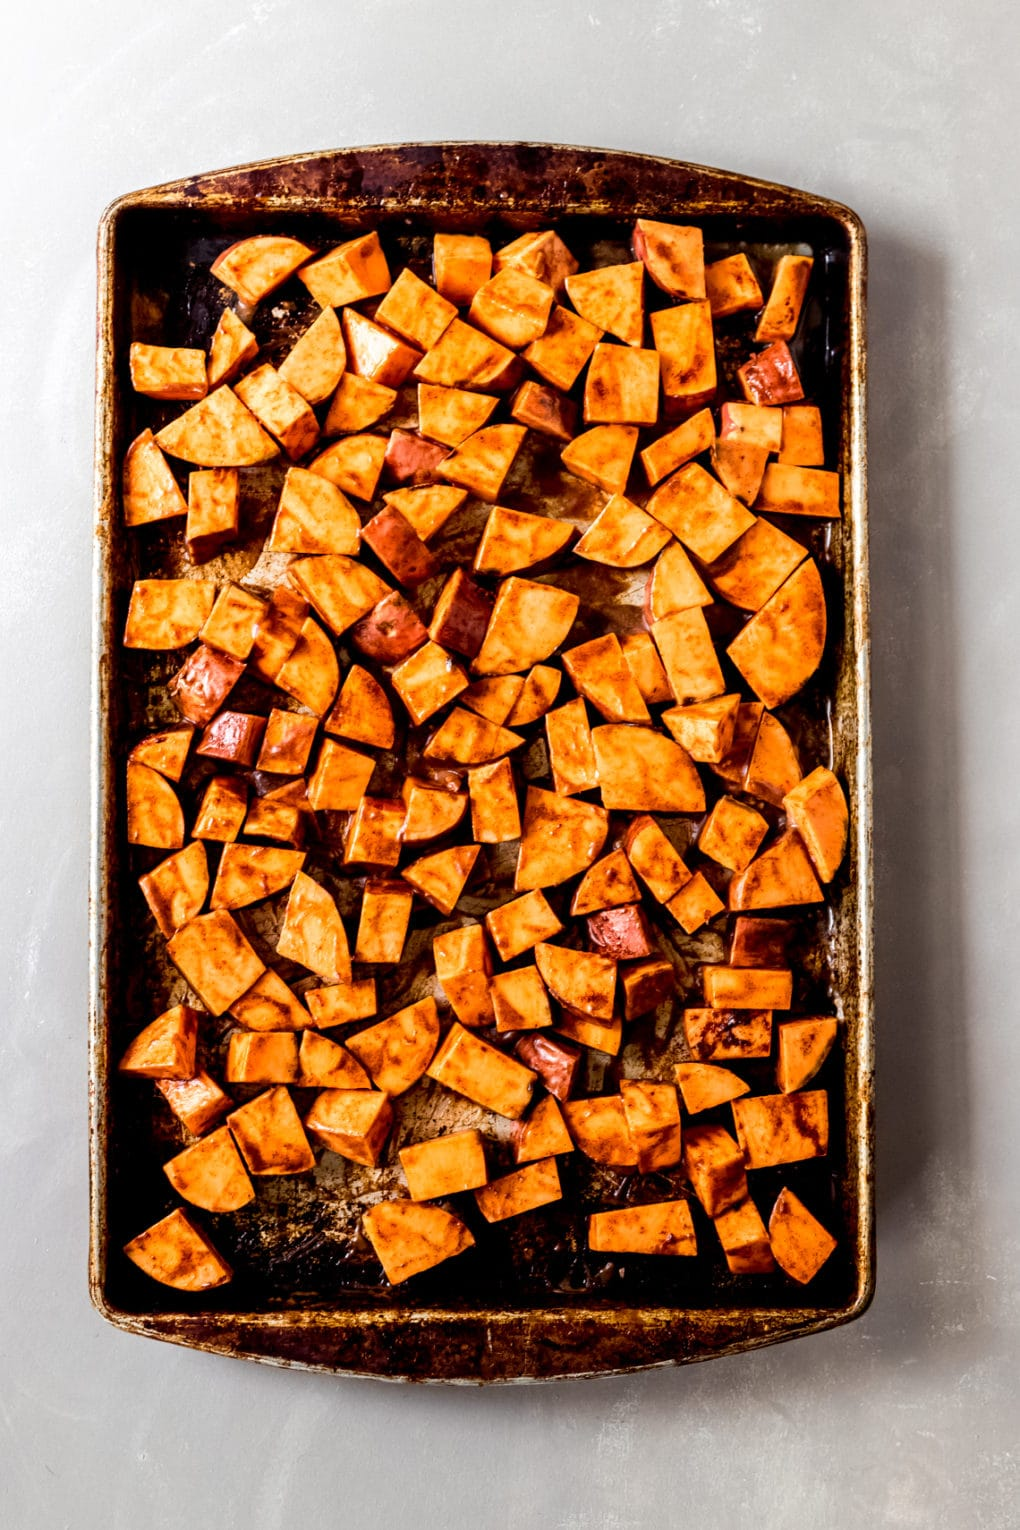 a baking sheet with unbaked cinnamon honey sweet potatoes